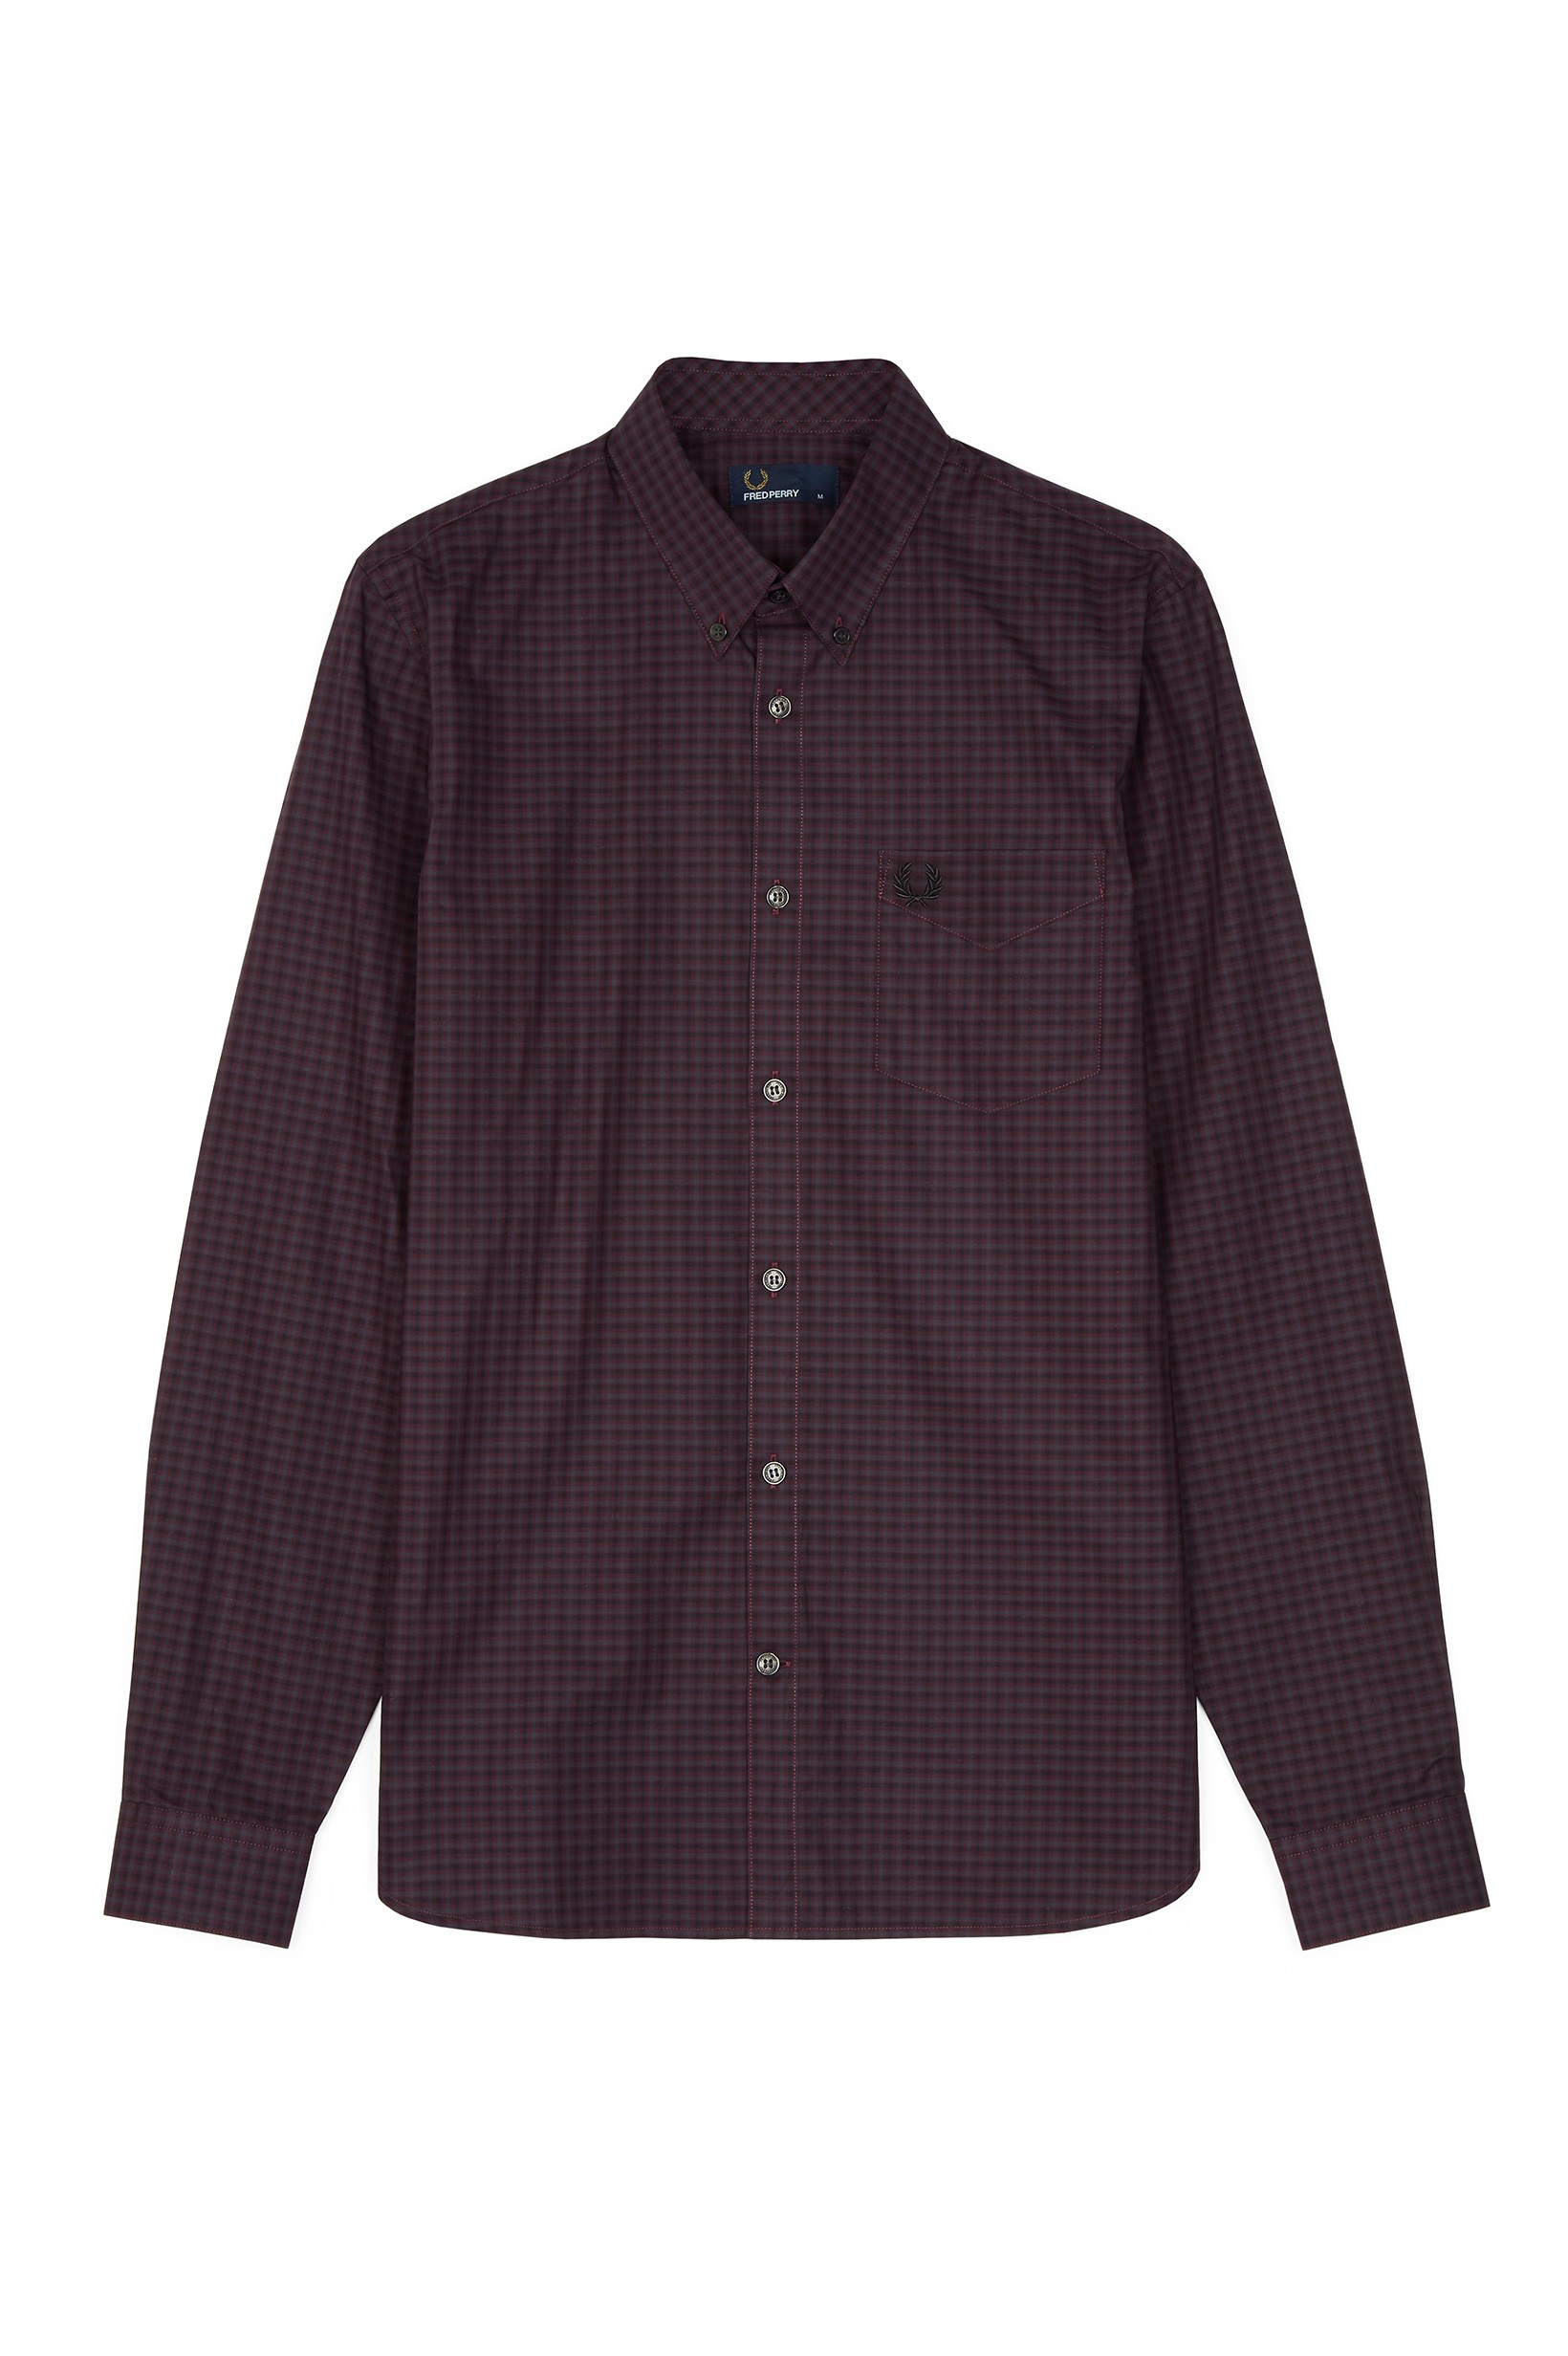 Fred Perry Deep Mahogany Three-Colour Gingham Shirt